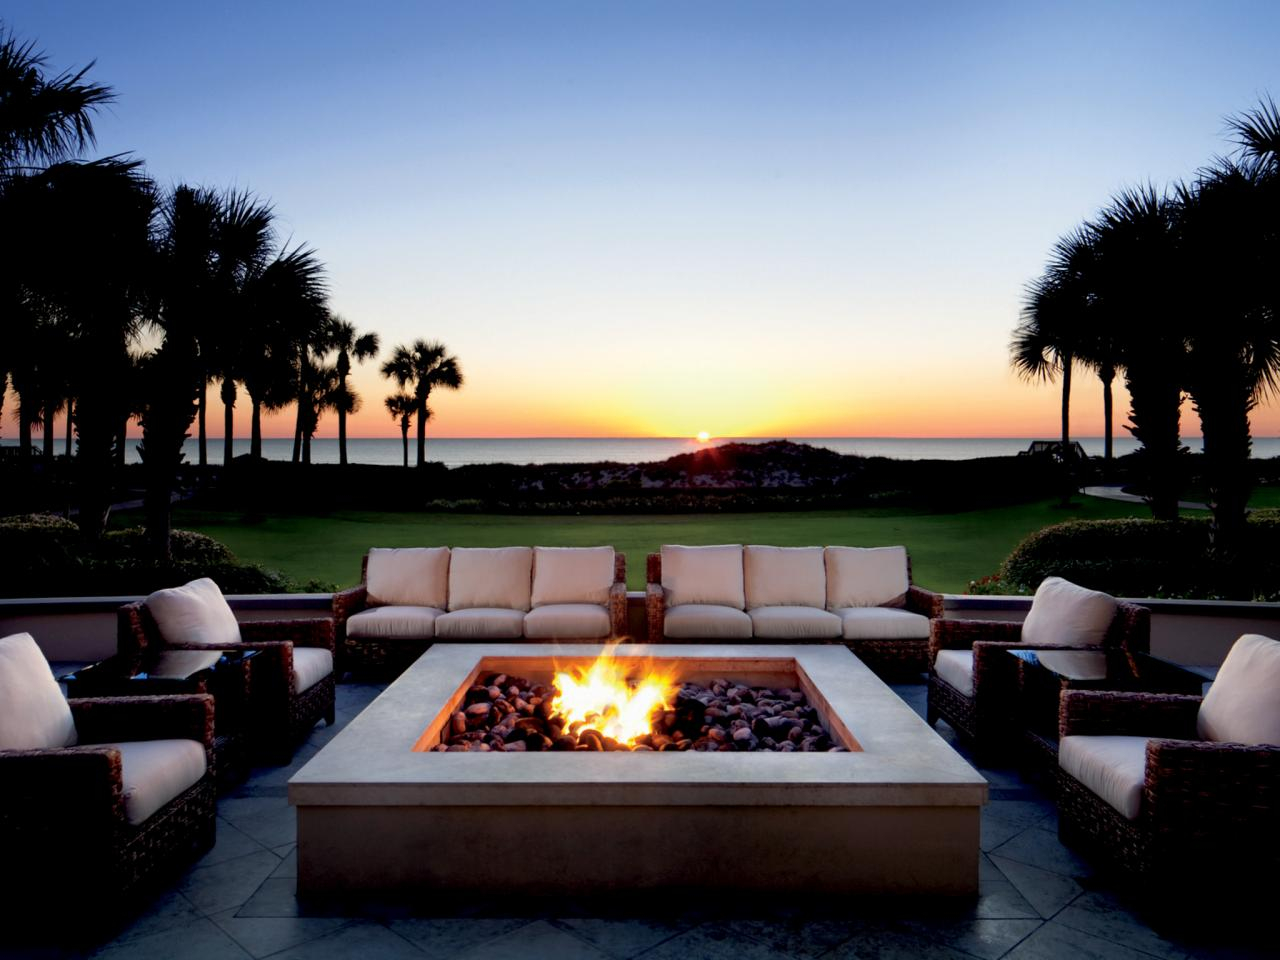 Beautiful Luxury Fire Pit 10 Amazing Backyard Fire Pits For Every pertaining to dimensions 1280 X 960